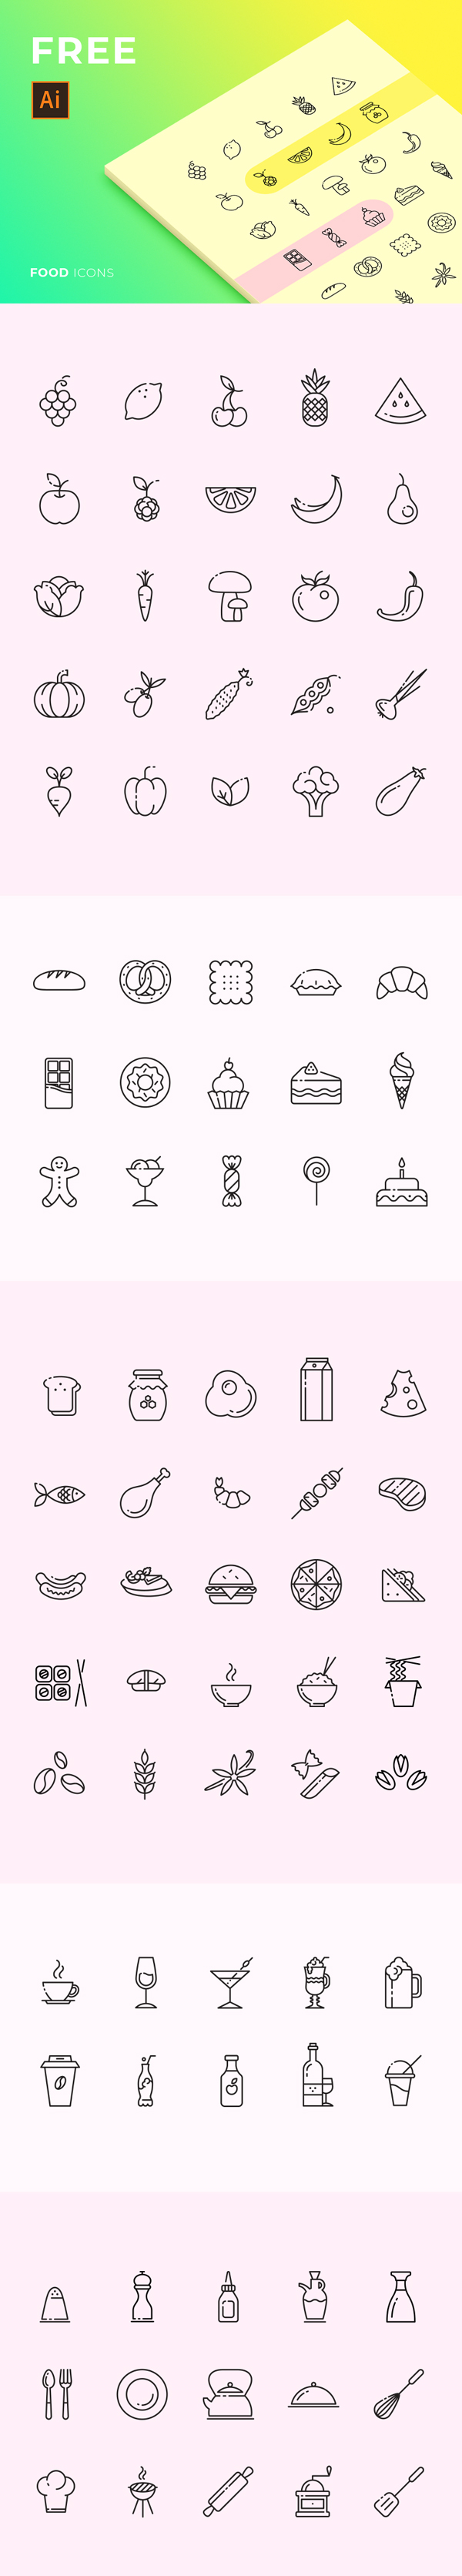 Food and Drink Free Icons